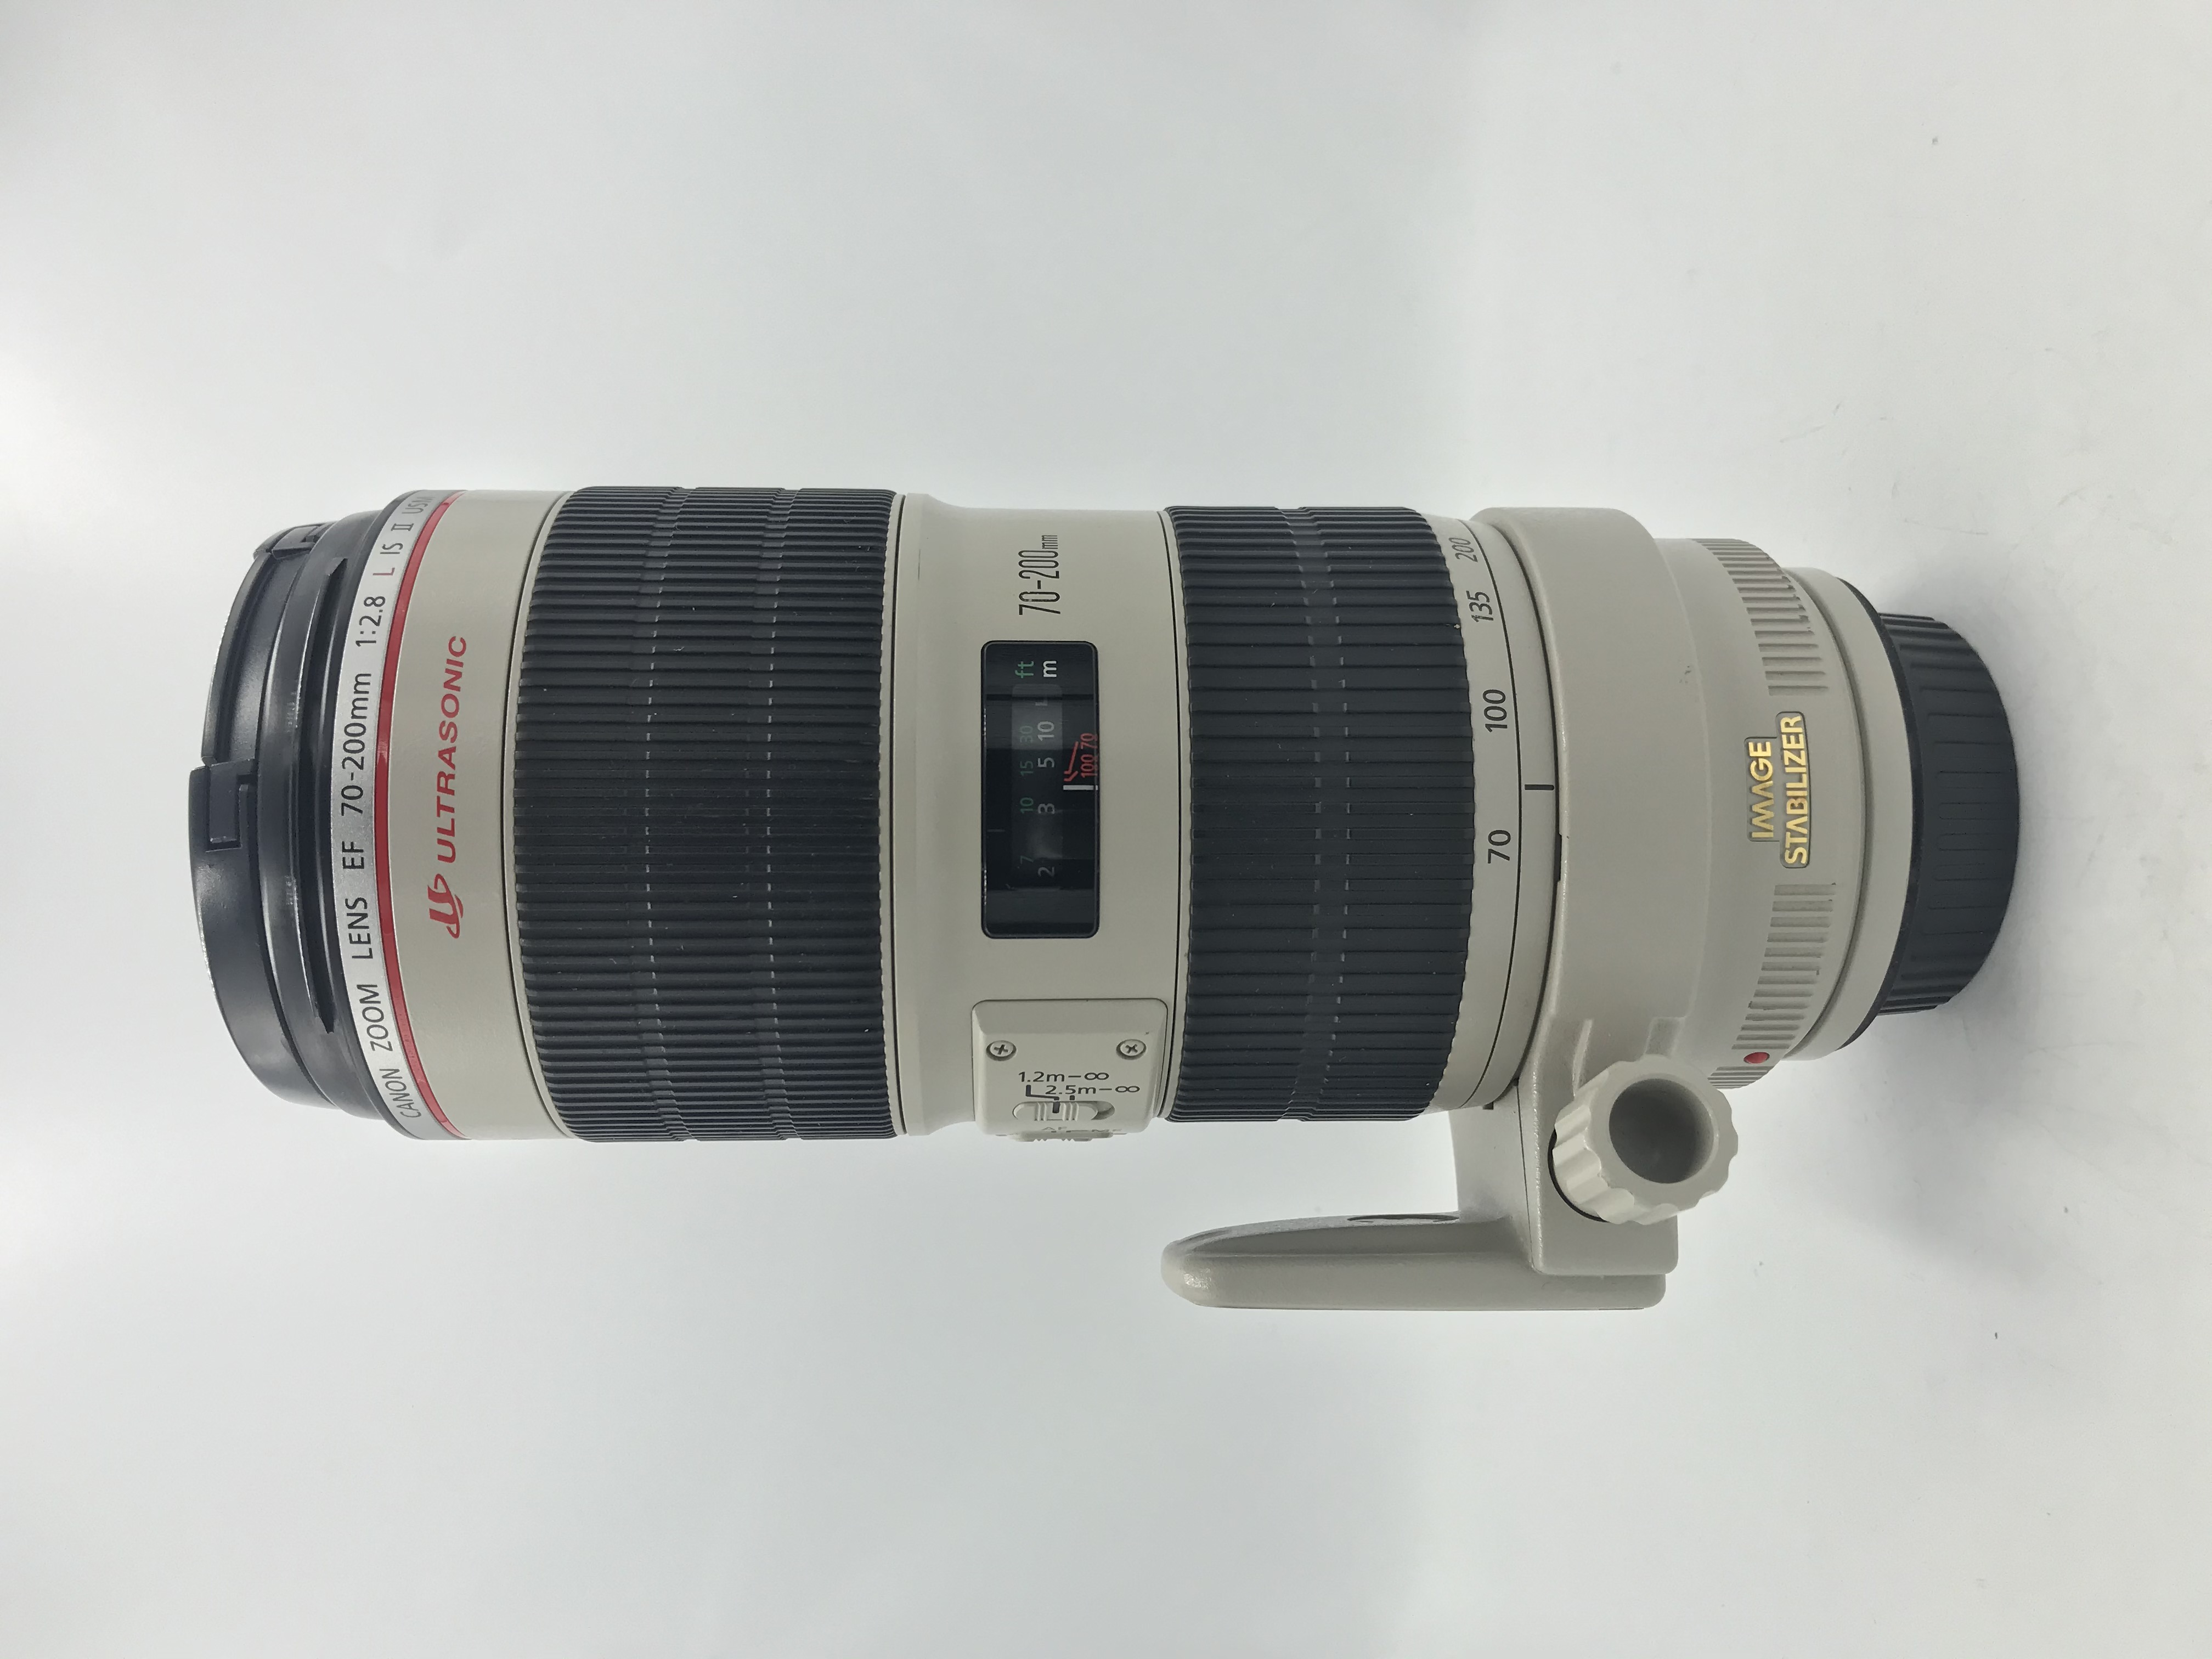 USED Canon 70-200mm F2.8 L IS II USM EF Lens